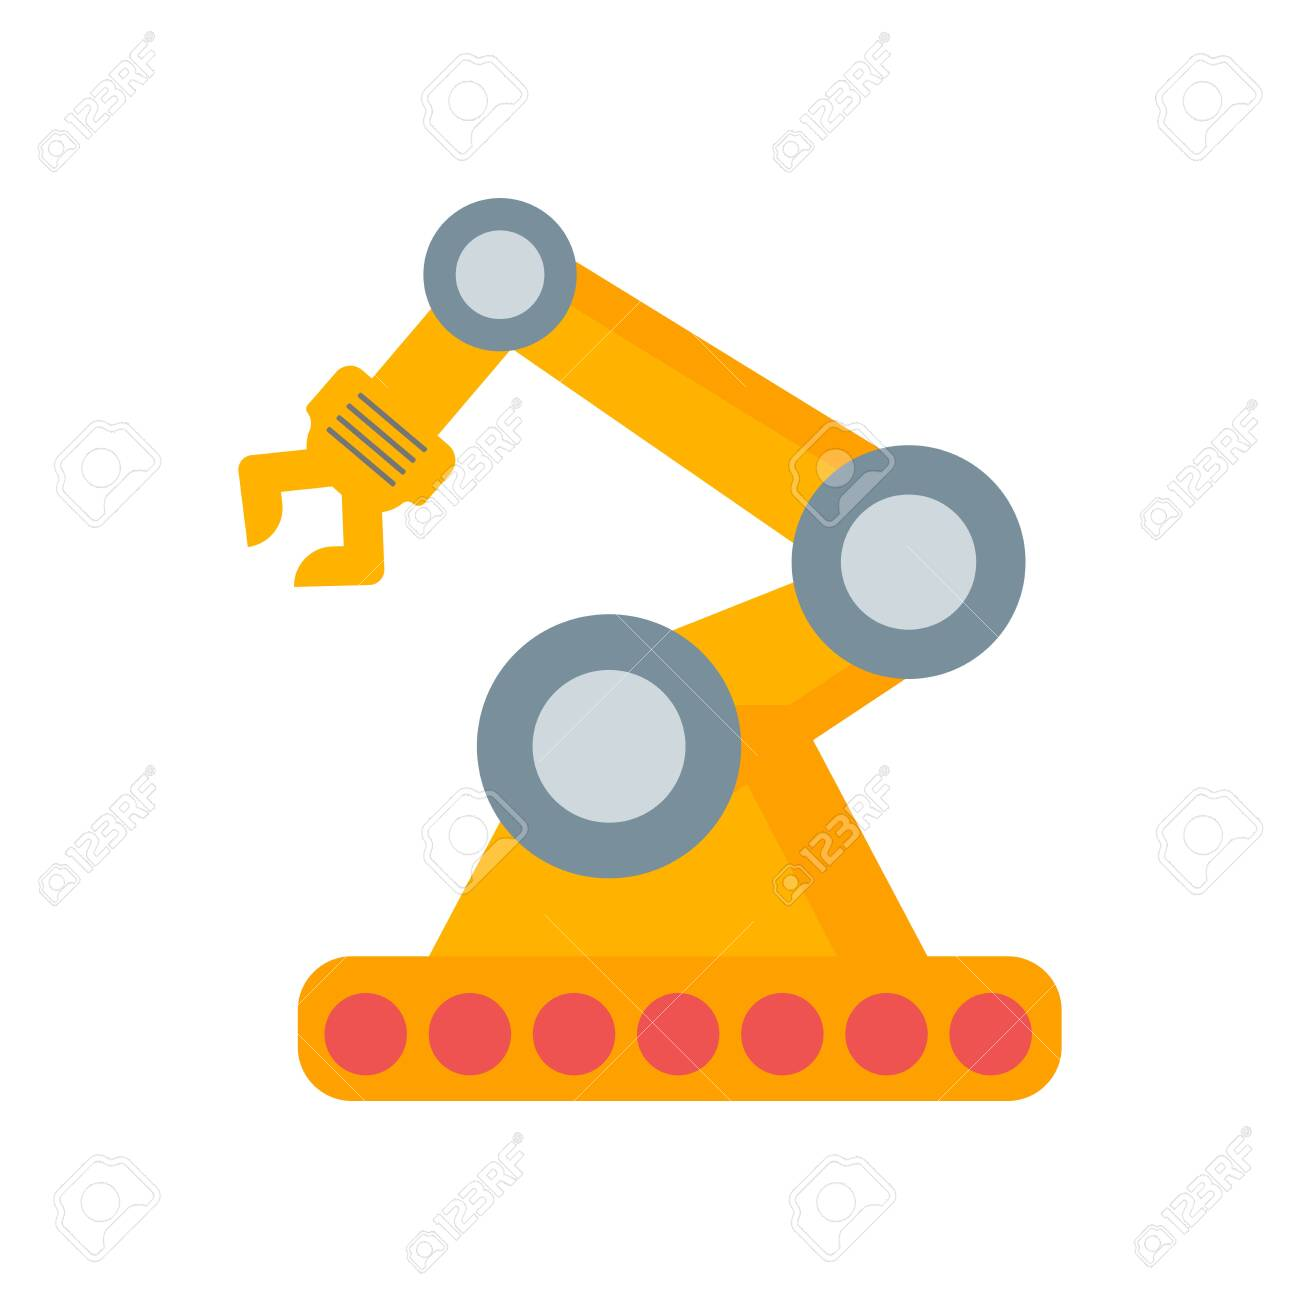 Robot arm icon vector isolated on white background for your web